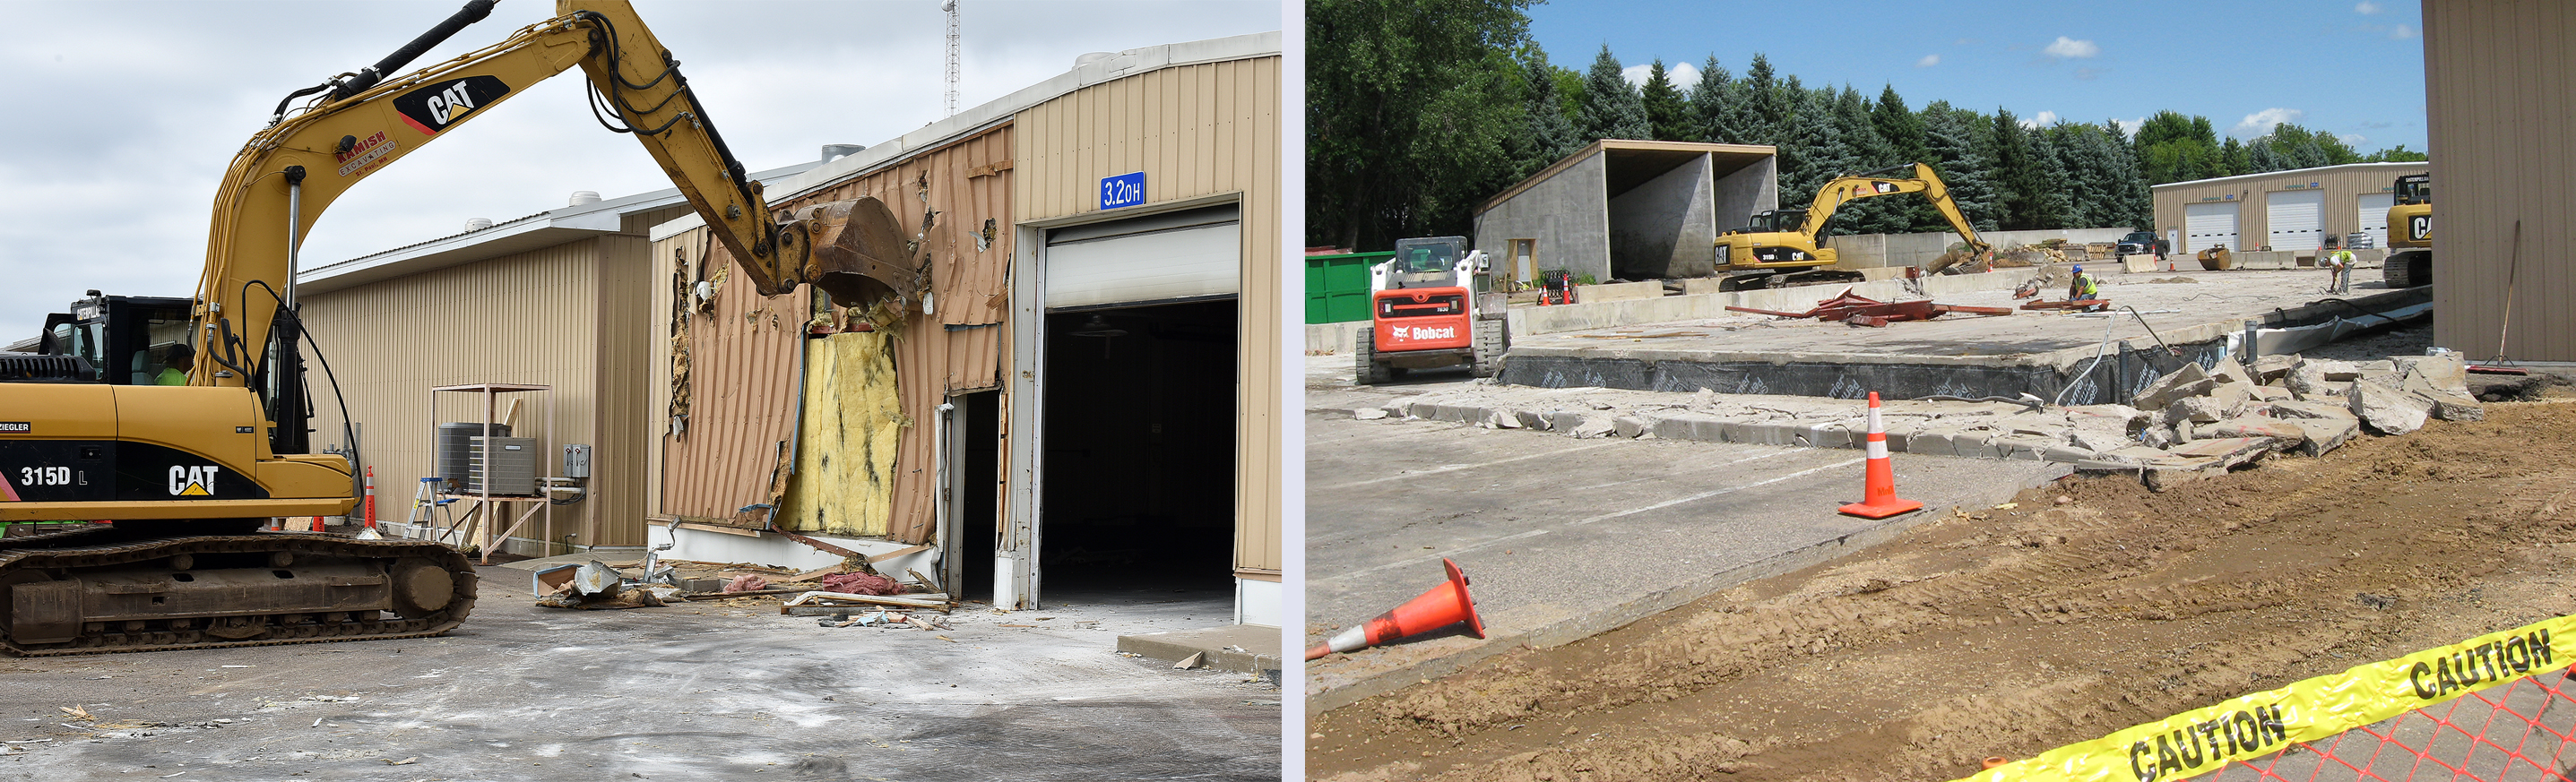 Two pictures - the one on the left shows an excavator beginning the process of tearing the old sign shop building down, and the one on the right shows the empty site after the demolition was complete